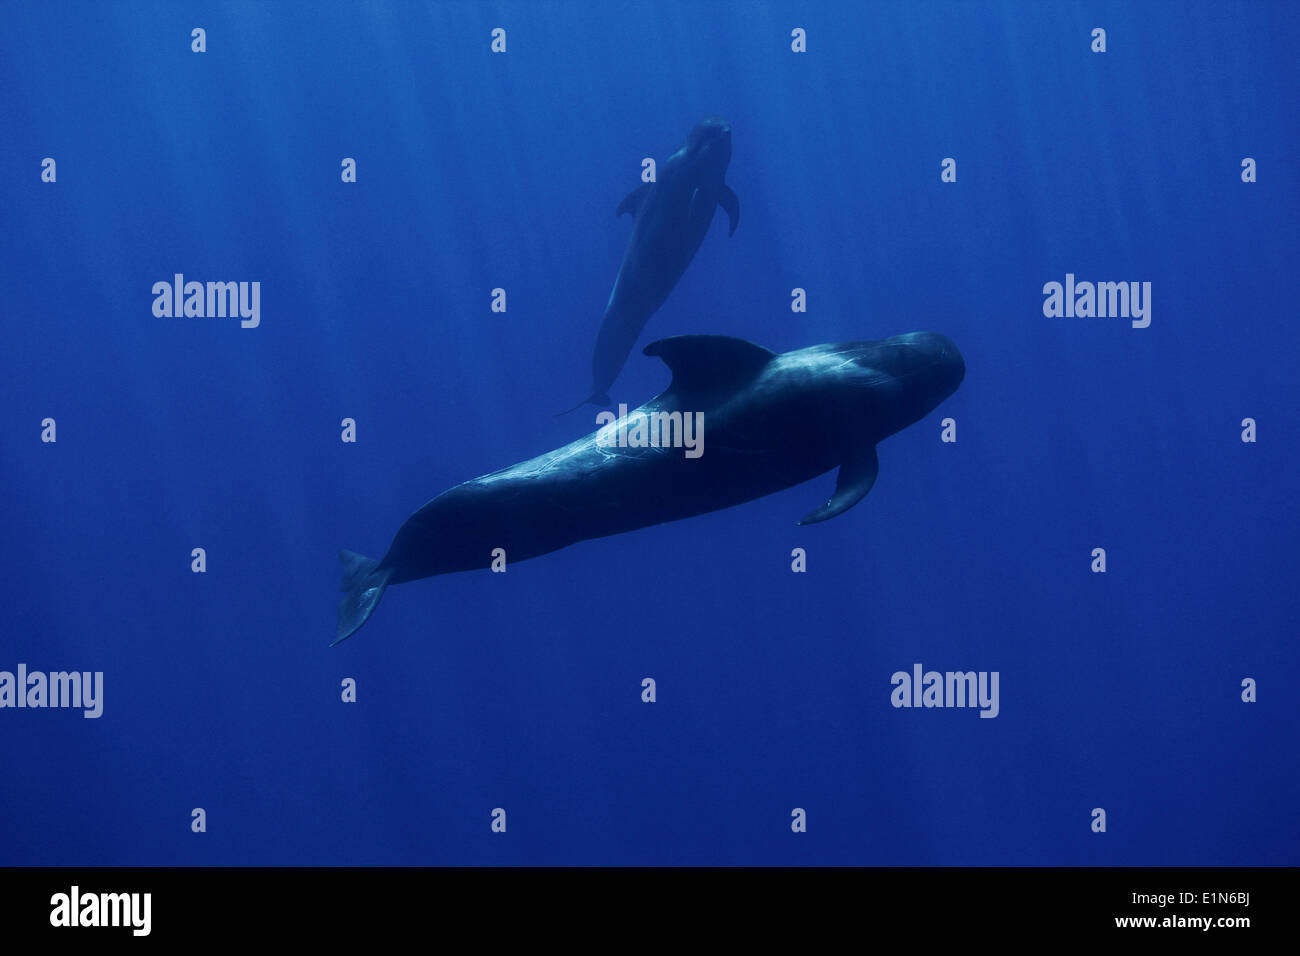 Two pilot whales - mother and calf - examining the human intruder off Funchal, Madeira island, Portugal - Stock Image